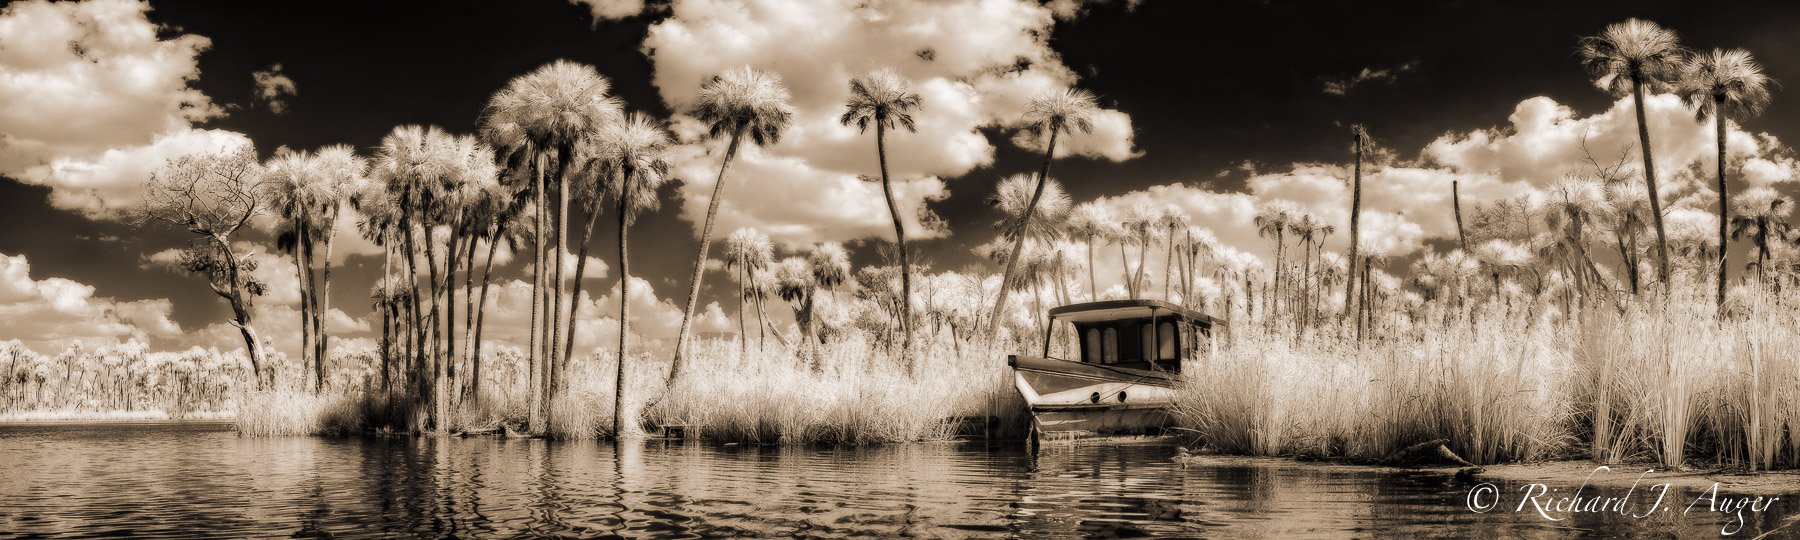 Chassahowitzka river, Florida, Chaz, boat, swamp, palm trees, coastal, storm, water, landscape, photographer, sepia tone, black and white, panorama